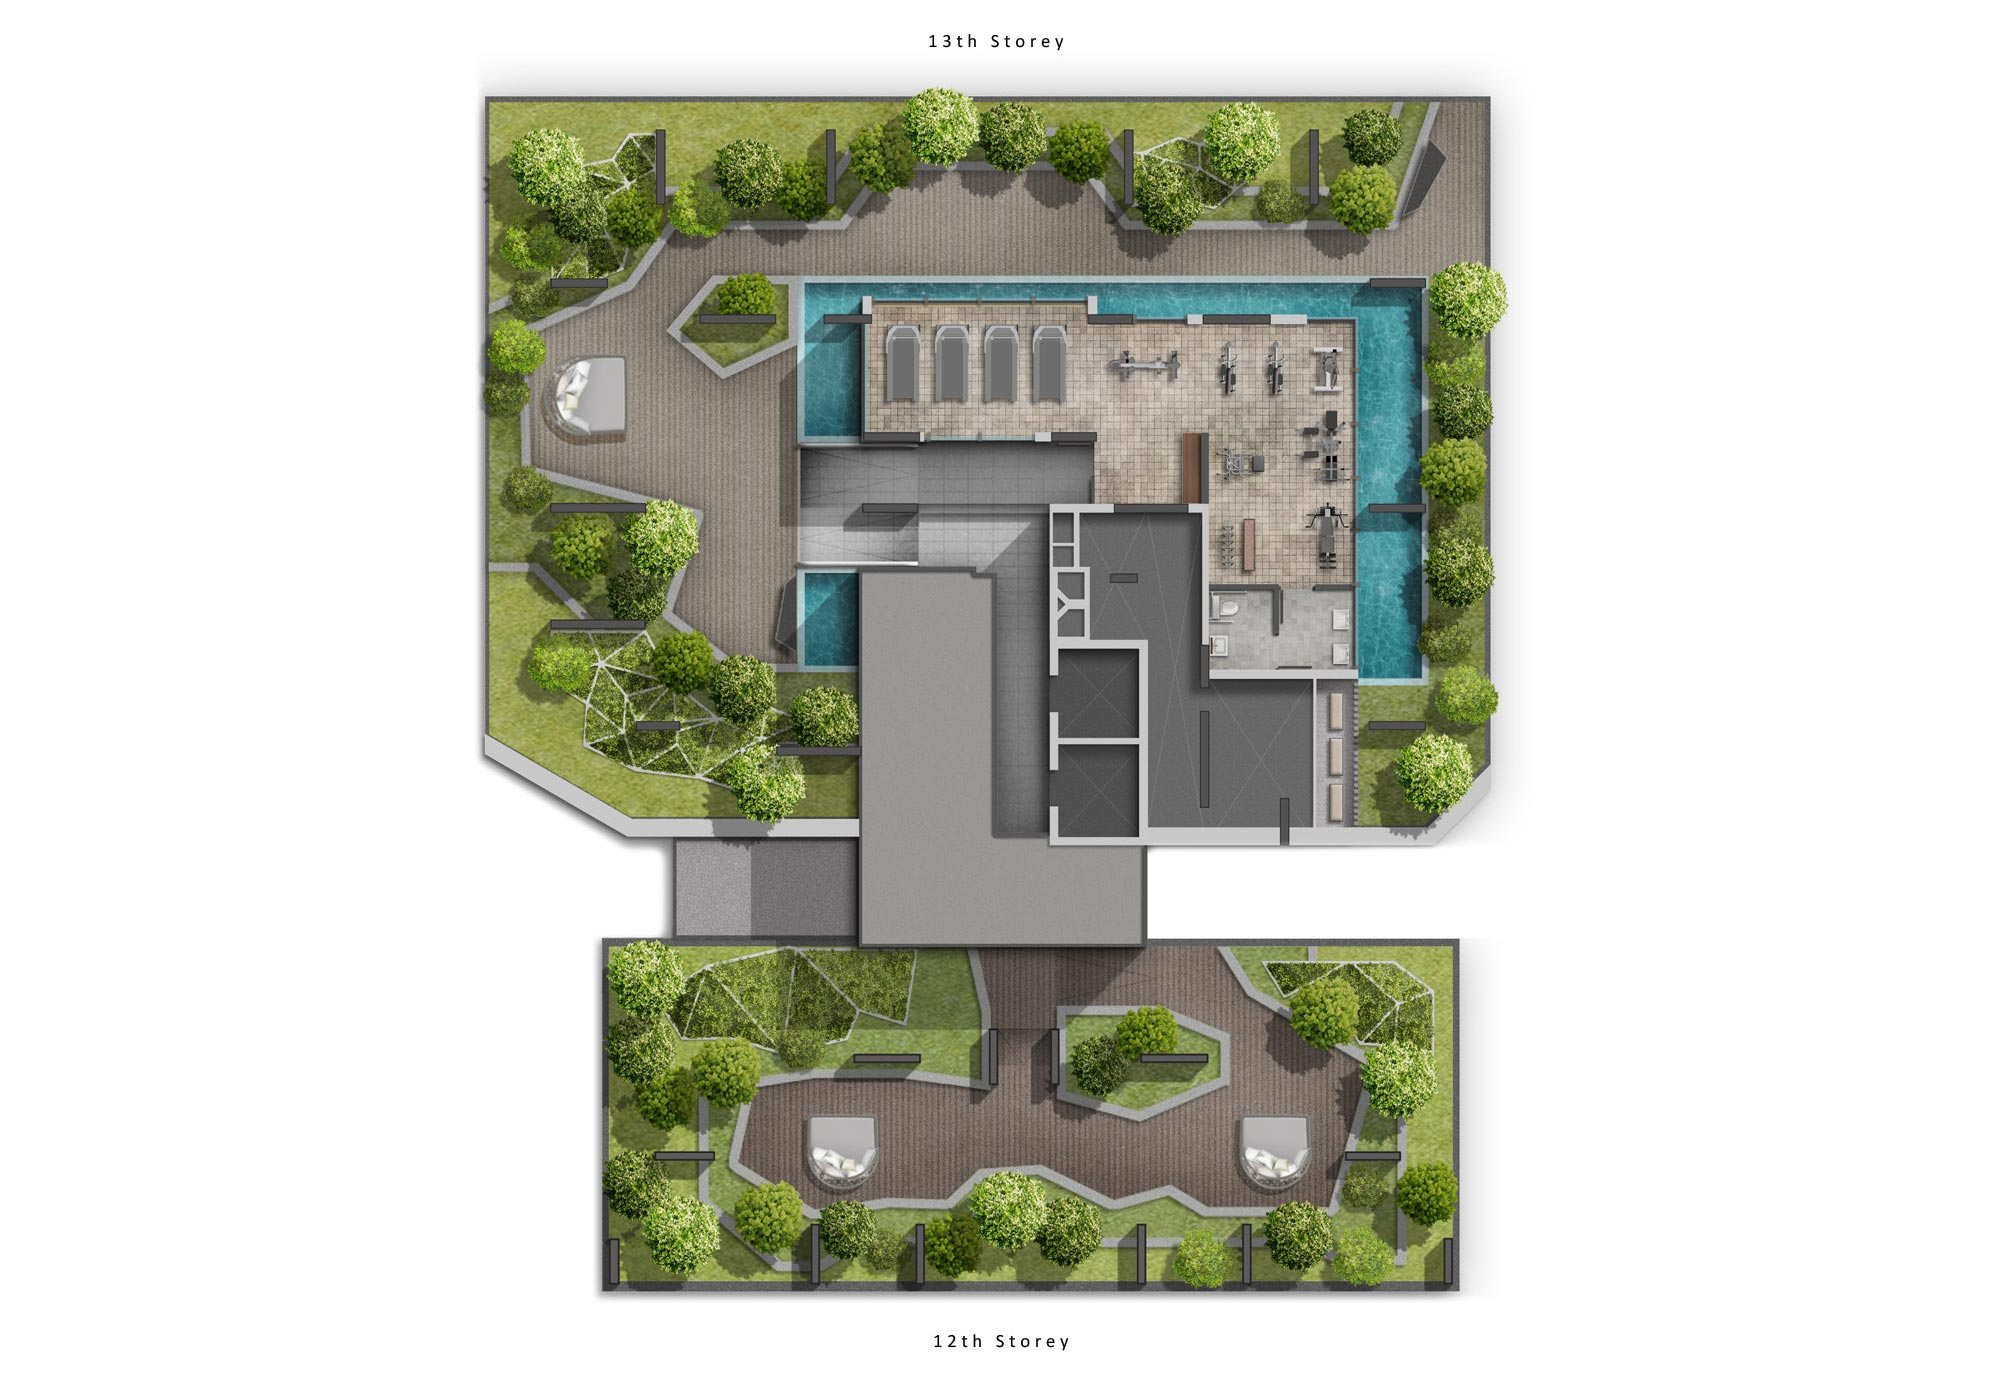 highline residences, sitemap, level 12 to 13